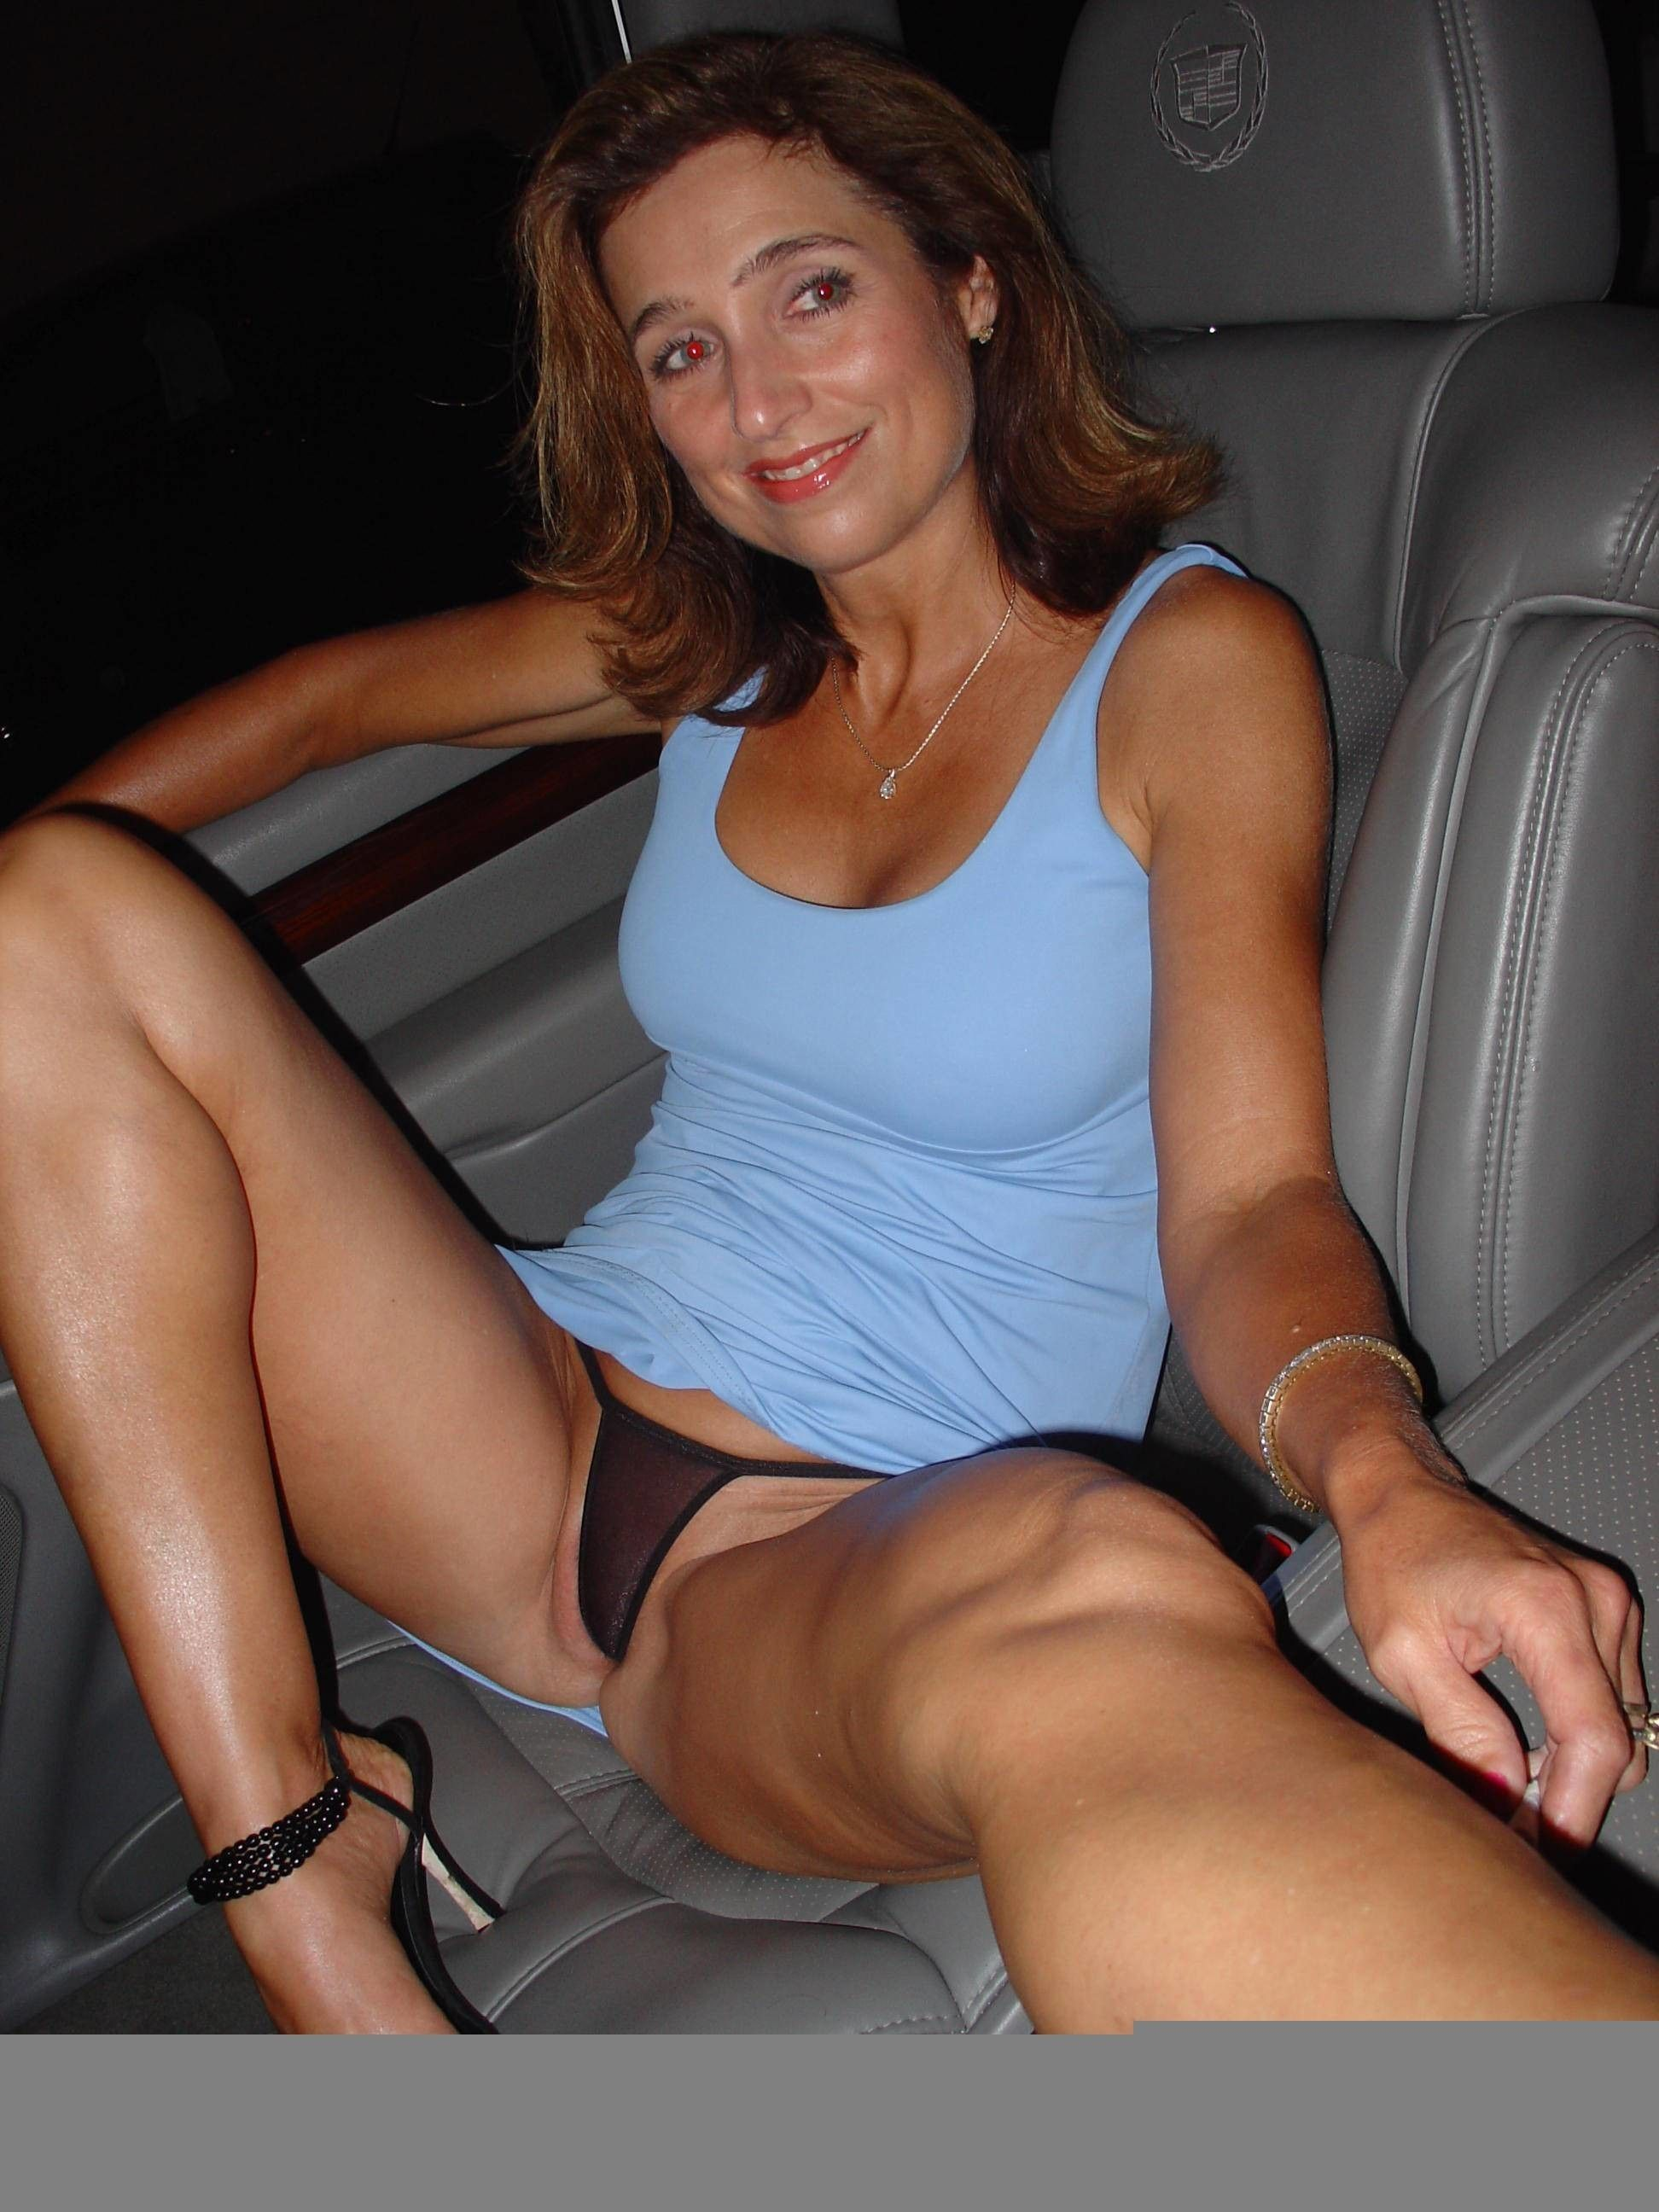 Mature milf upskirt (black panties)